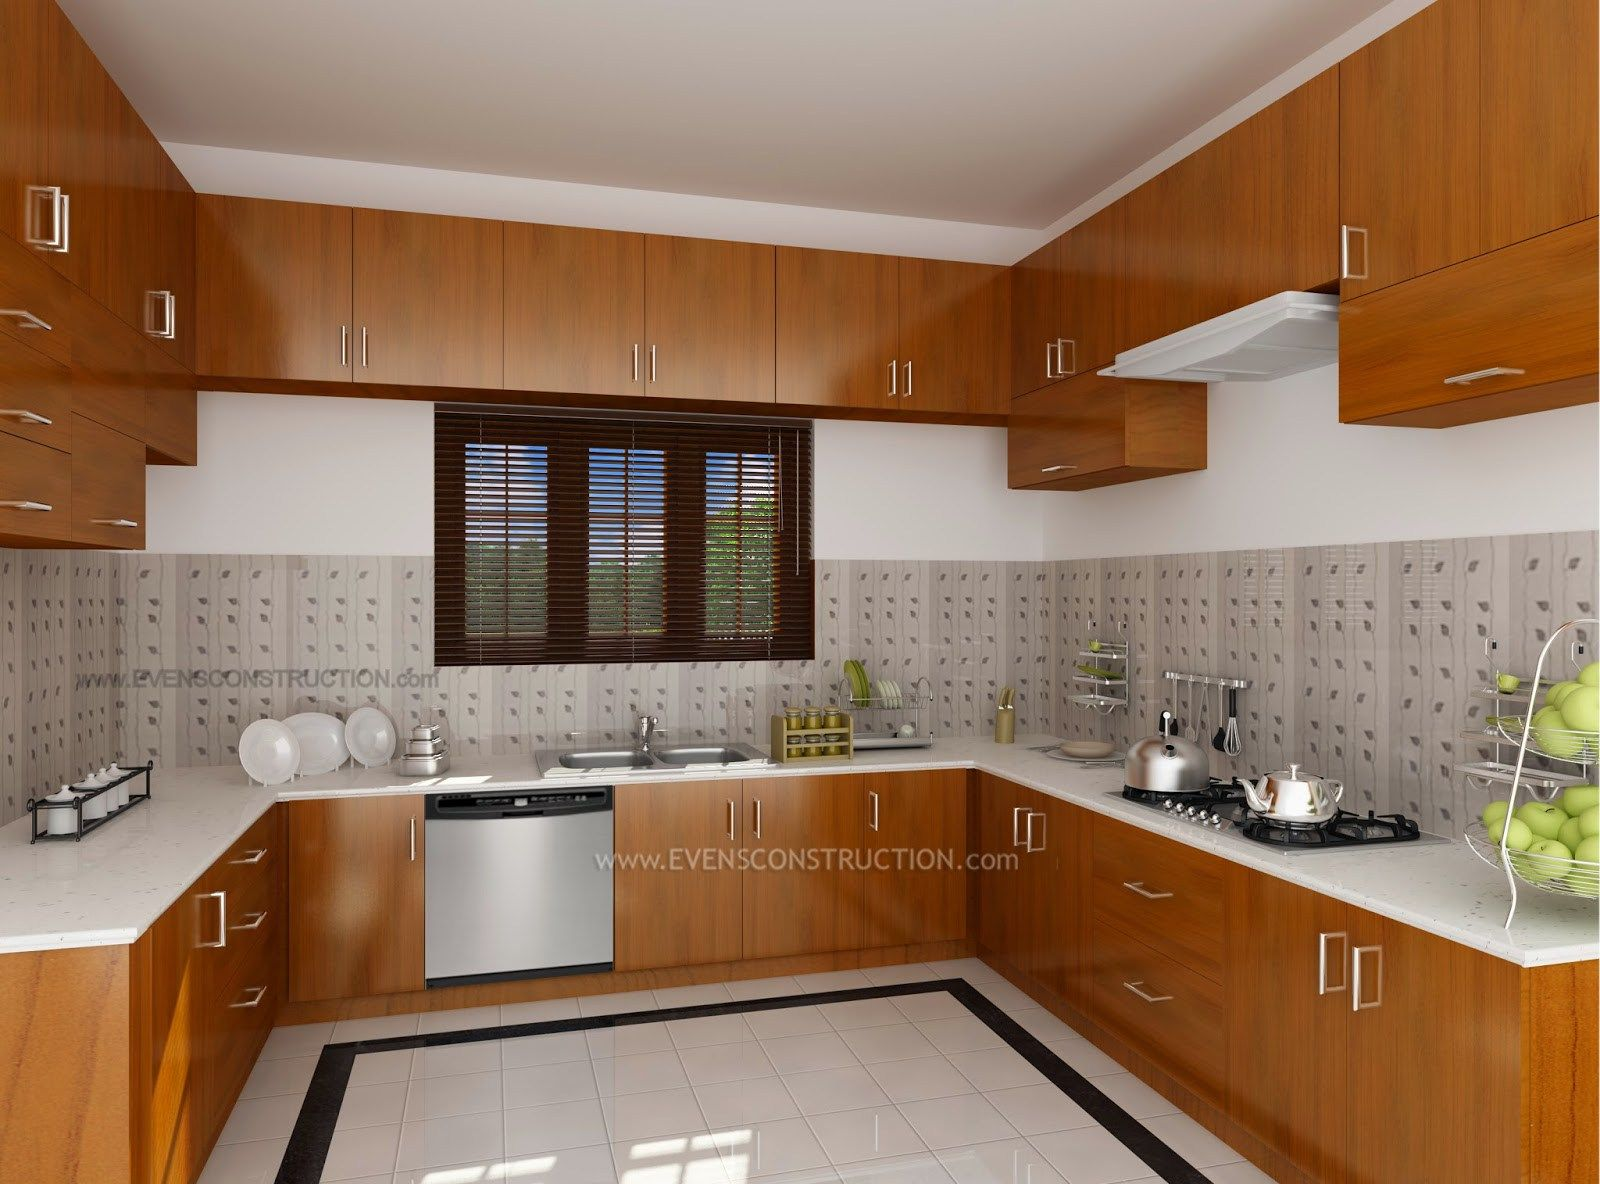 Design interior kitchen home kerala modern house kitchen Kitchen interior design